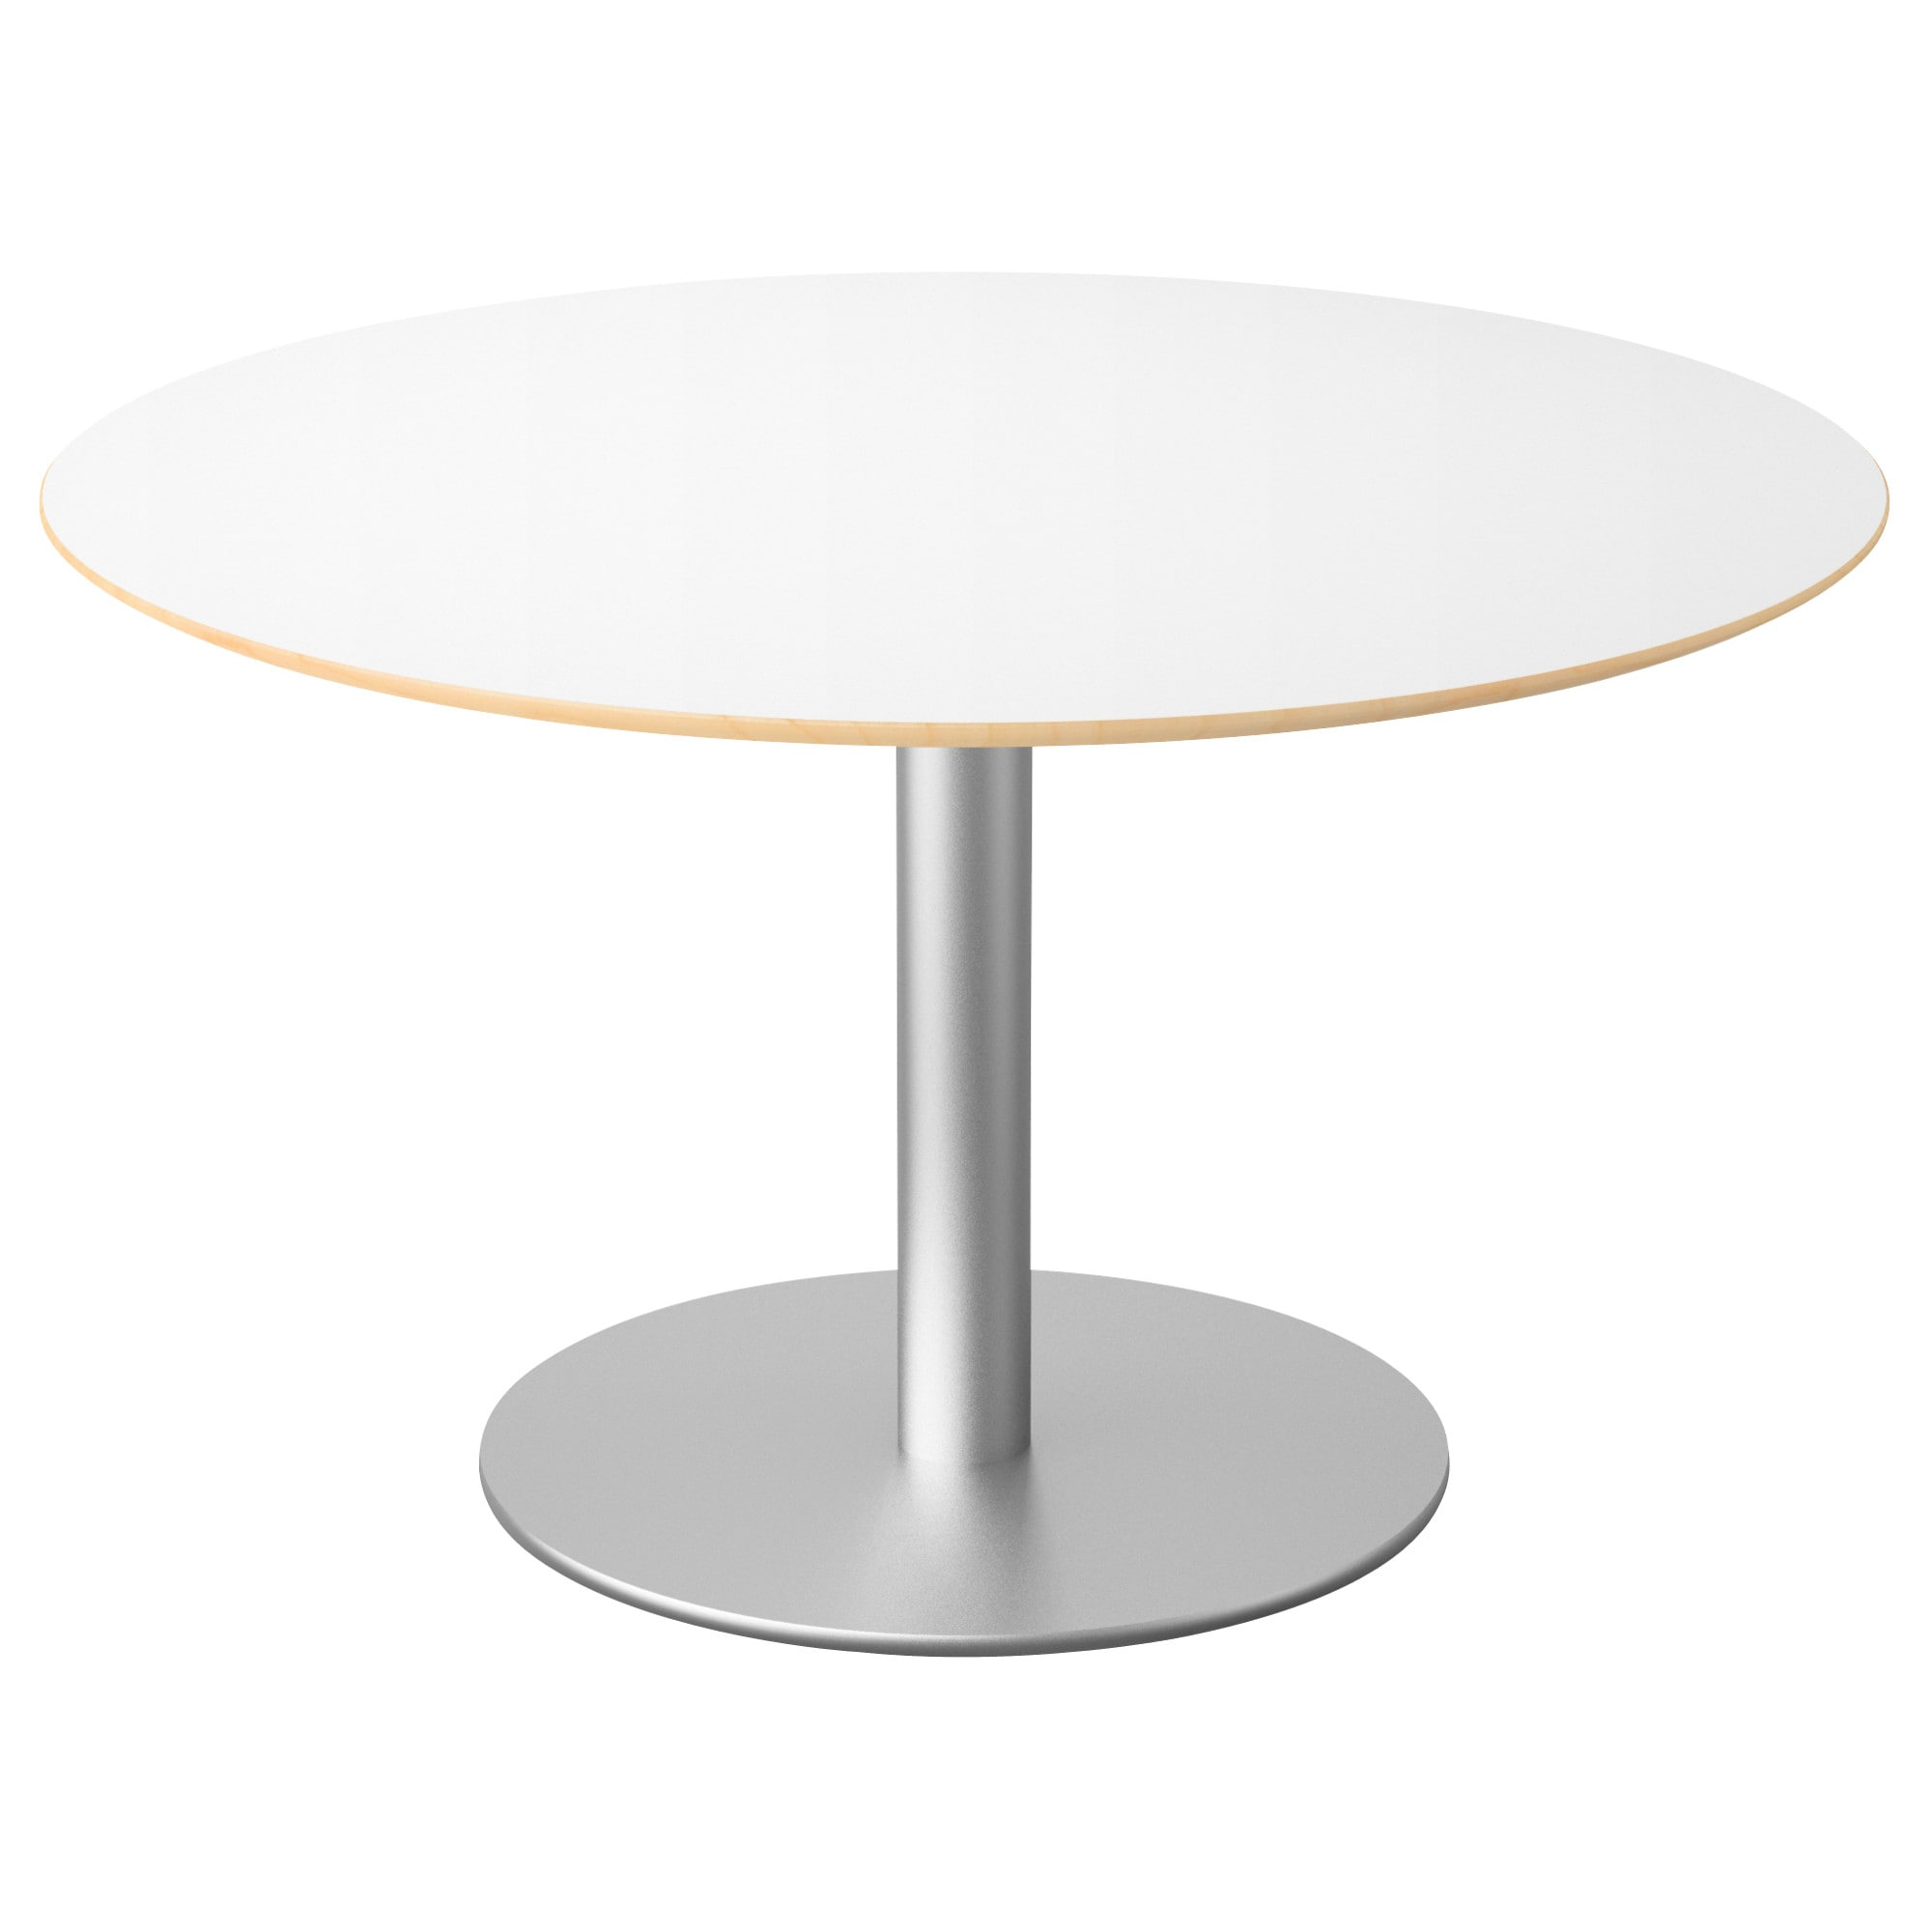 Table de jardin ronde ikea for Table de jardin ikea